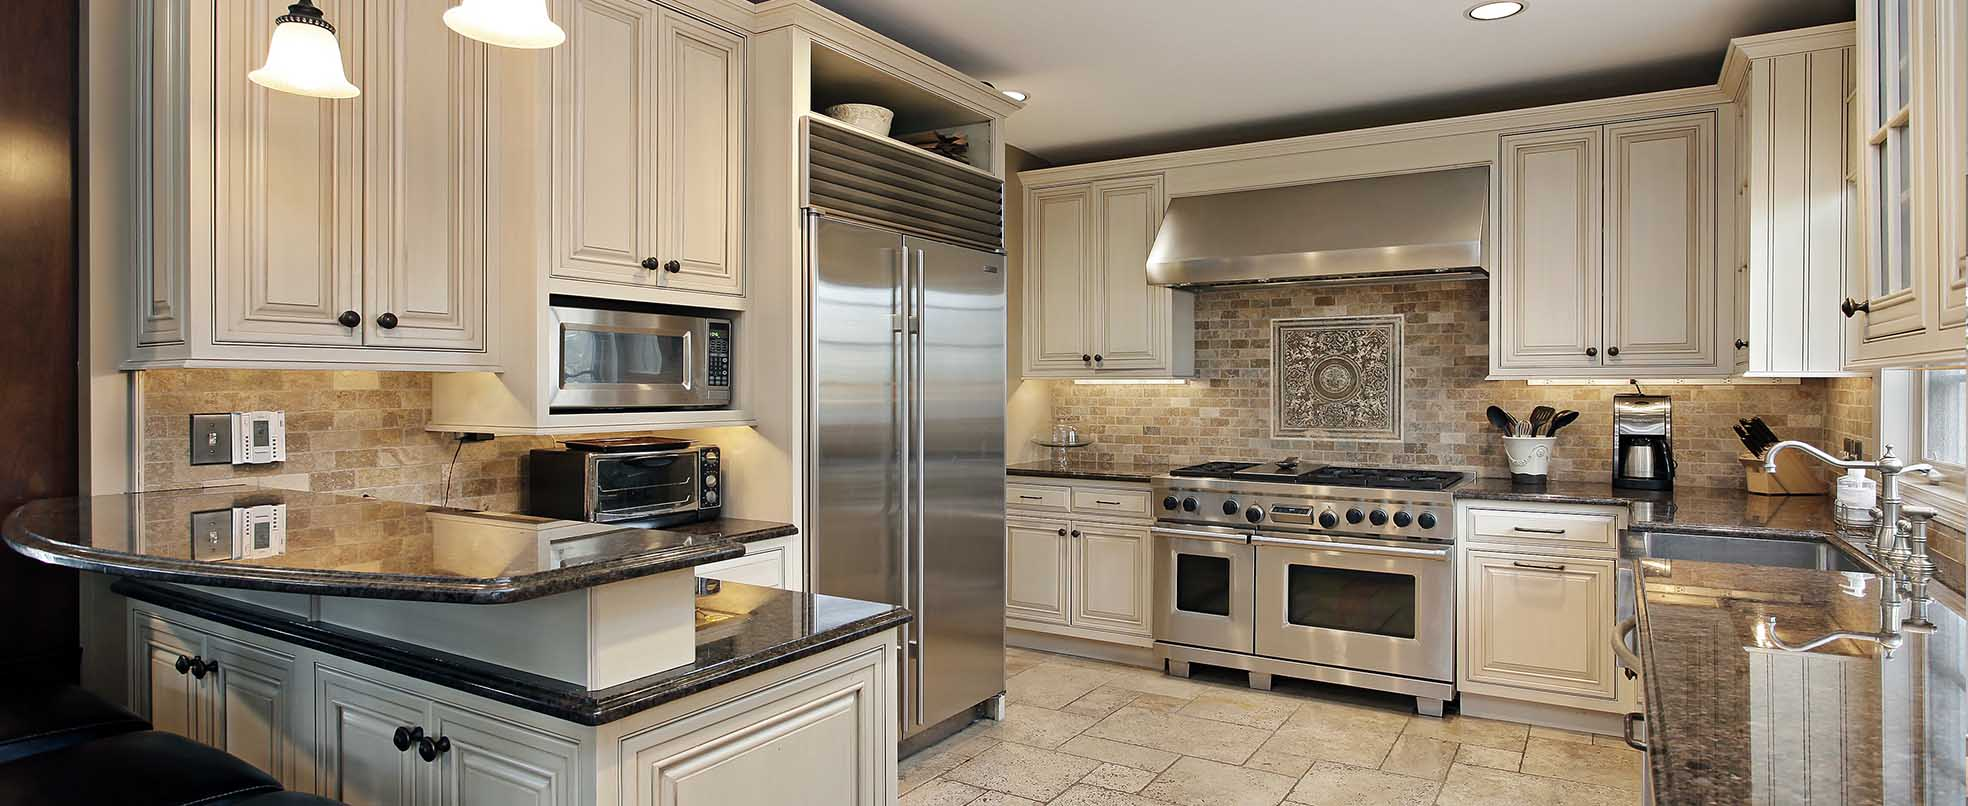 Renovations Home Center Kitchen And Bath Remodeling Contractors In Palm Harbor Professional